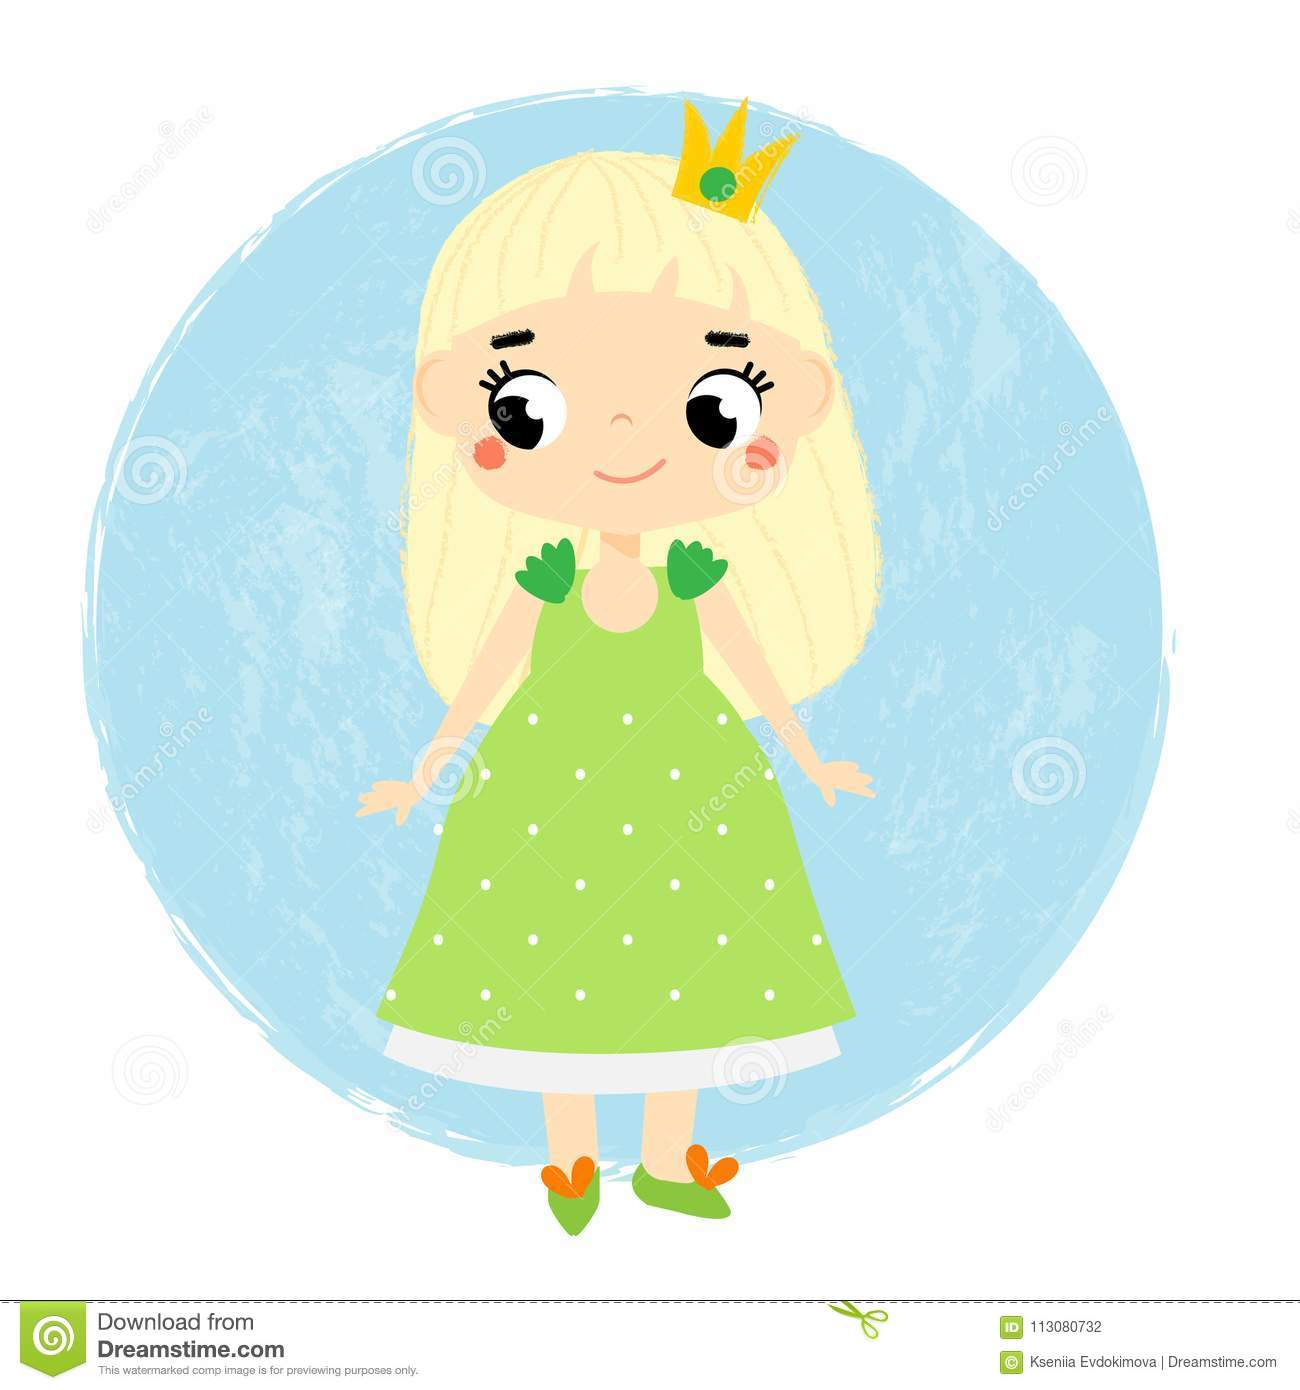 Cute princess little baby girl in queen crown cartoon style vector download cute princess little baby girl in queen crown cartoon style vector illustration for m4hsunfo